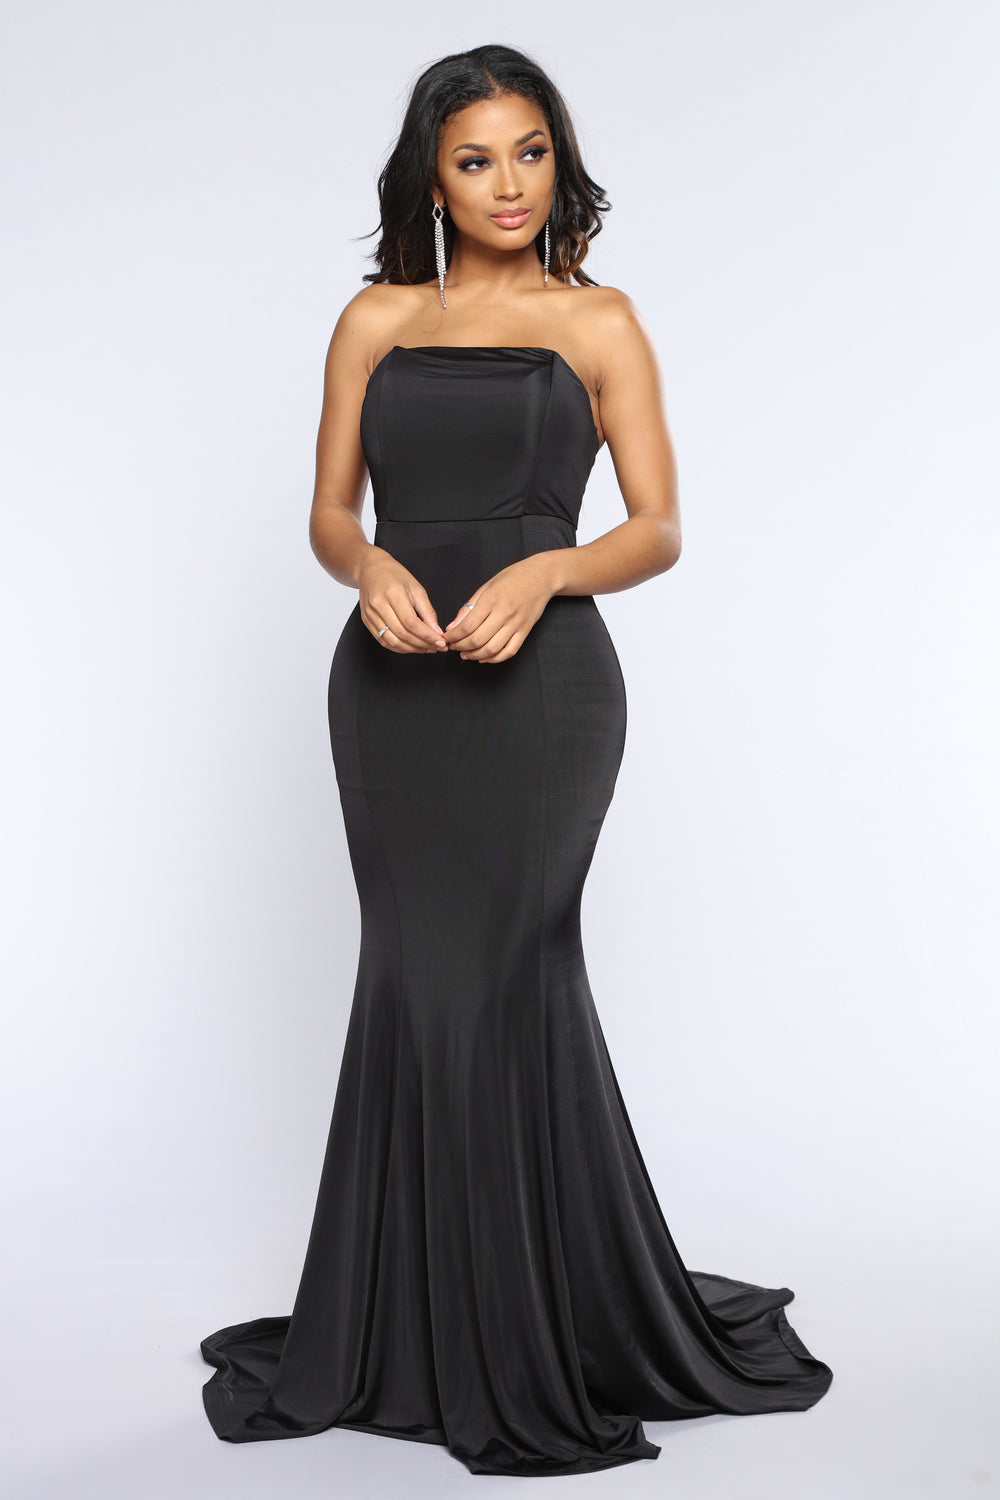 Leave You Breathless Strapless Dress - Black